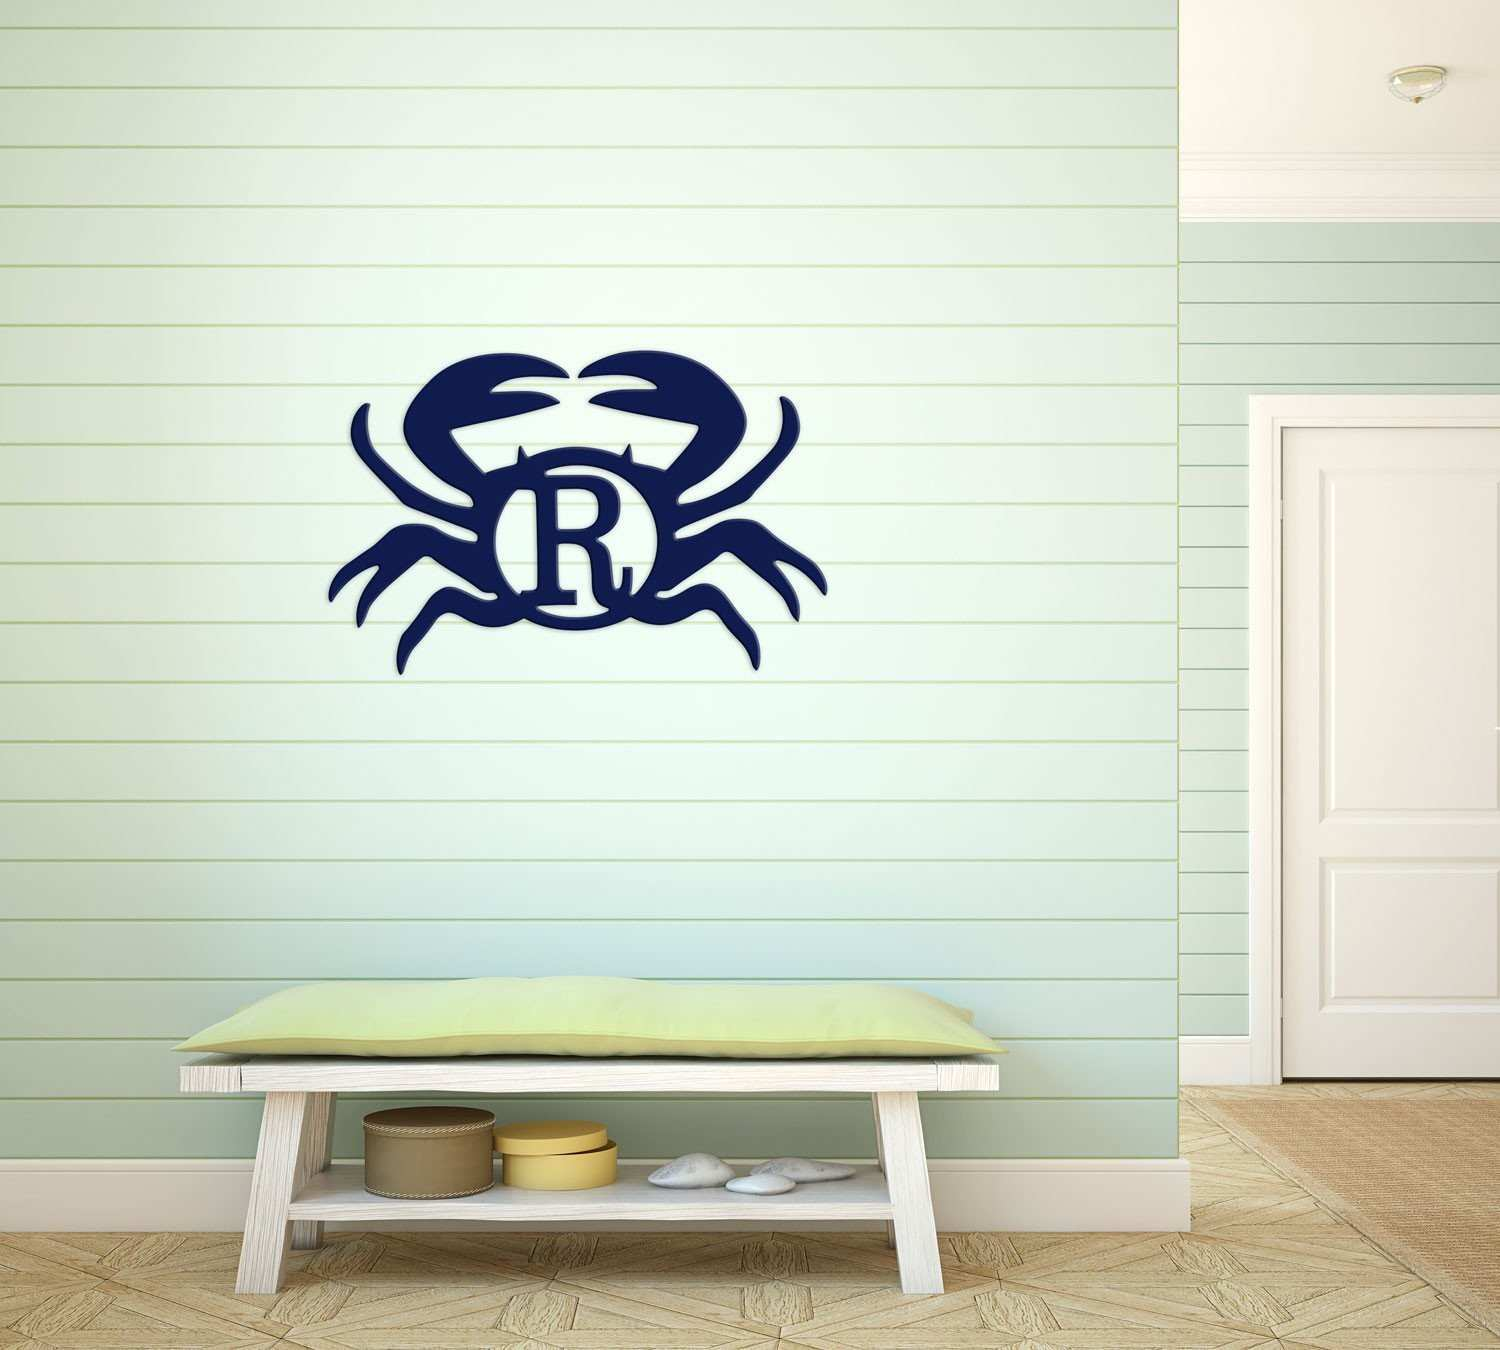 Home Decor 99 New Monogram Wall Decor formidable Metal Wall Art